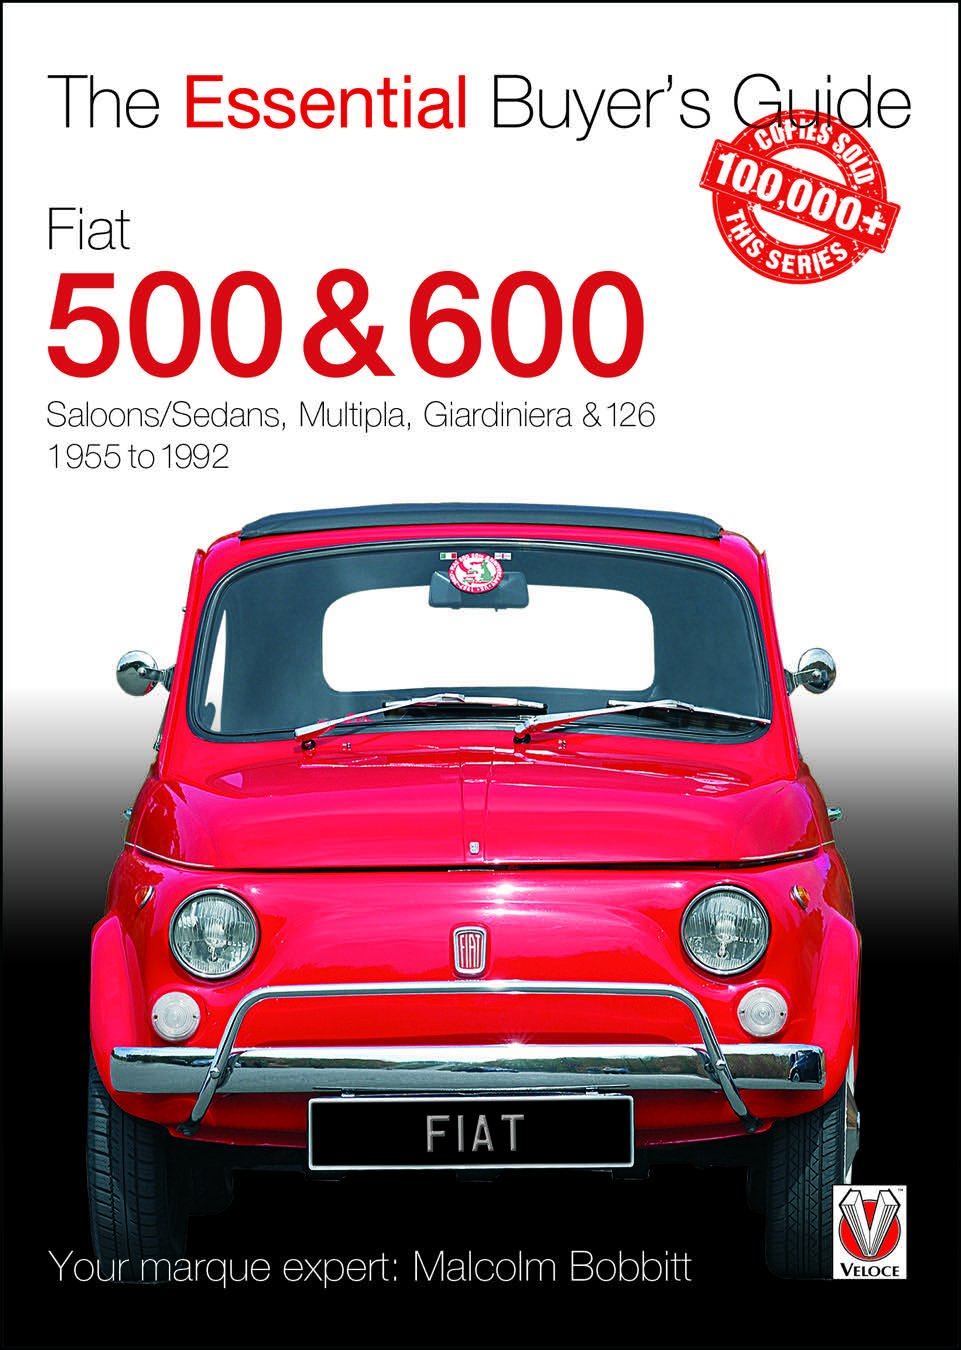 Fiat 500 & 600: The Essential Buyer's Guide (Essential Buyer's Guide  Series): Malcolm Bobbitt: 9781787110342: Amazon.com: Books